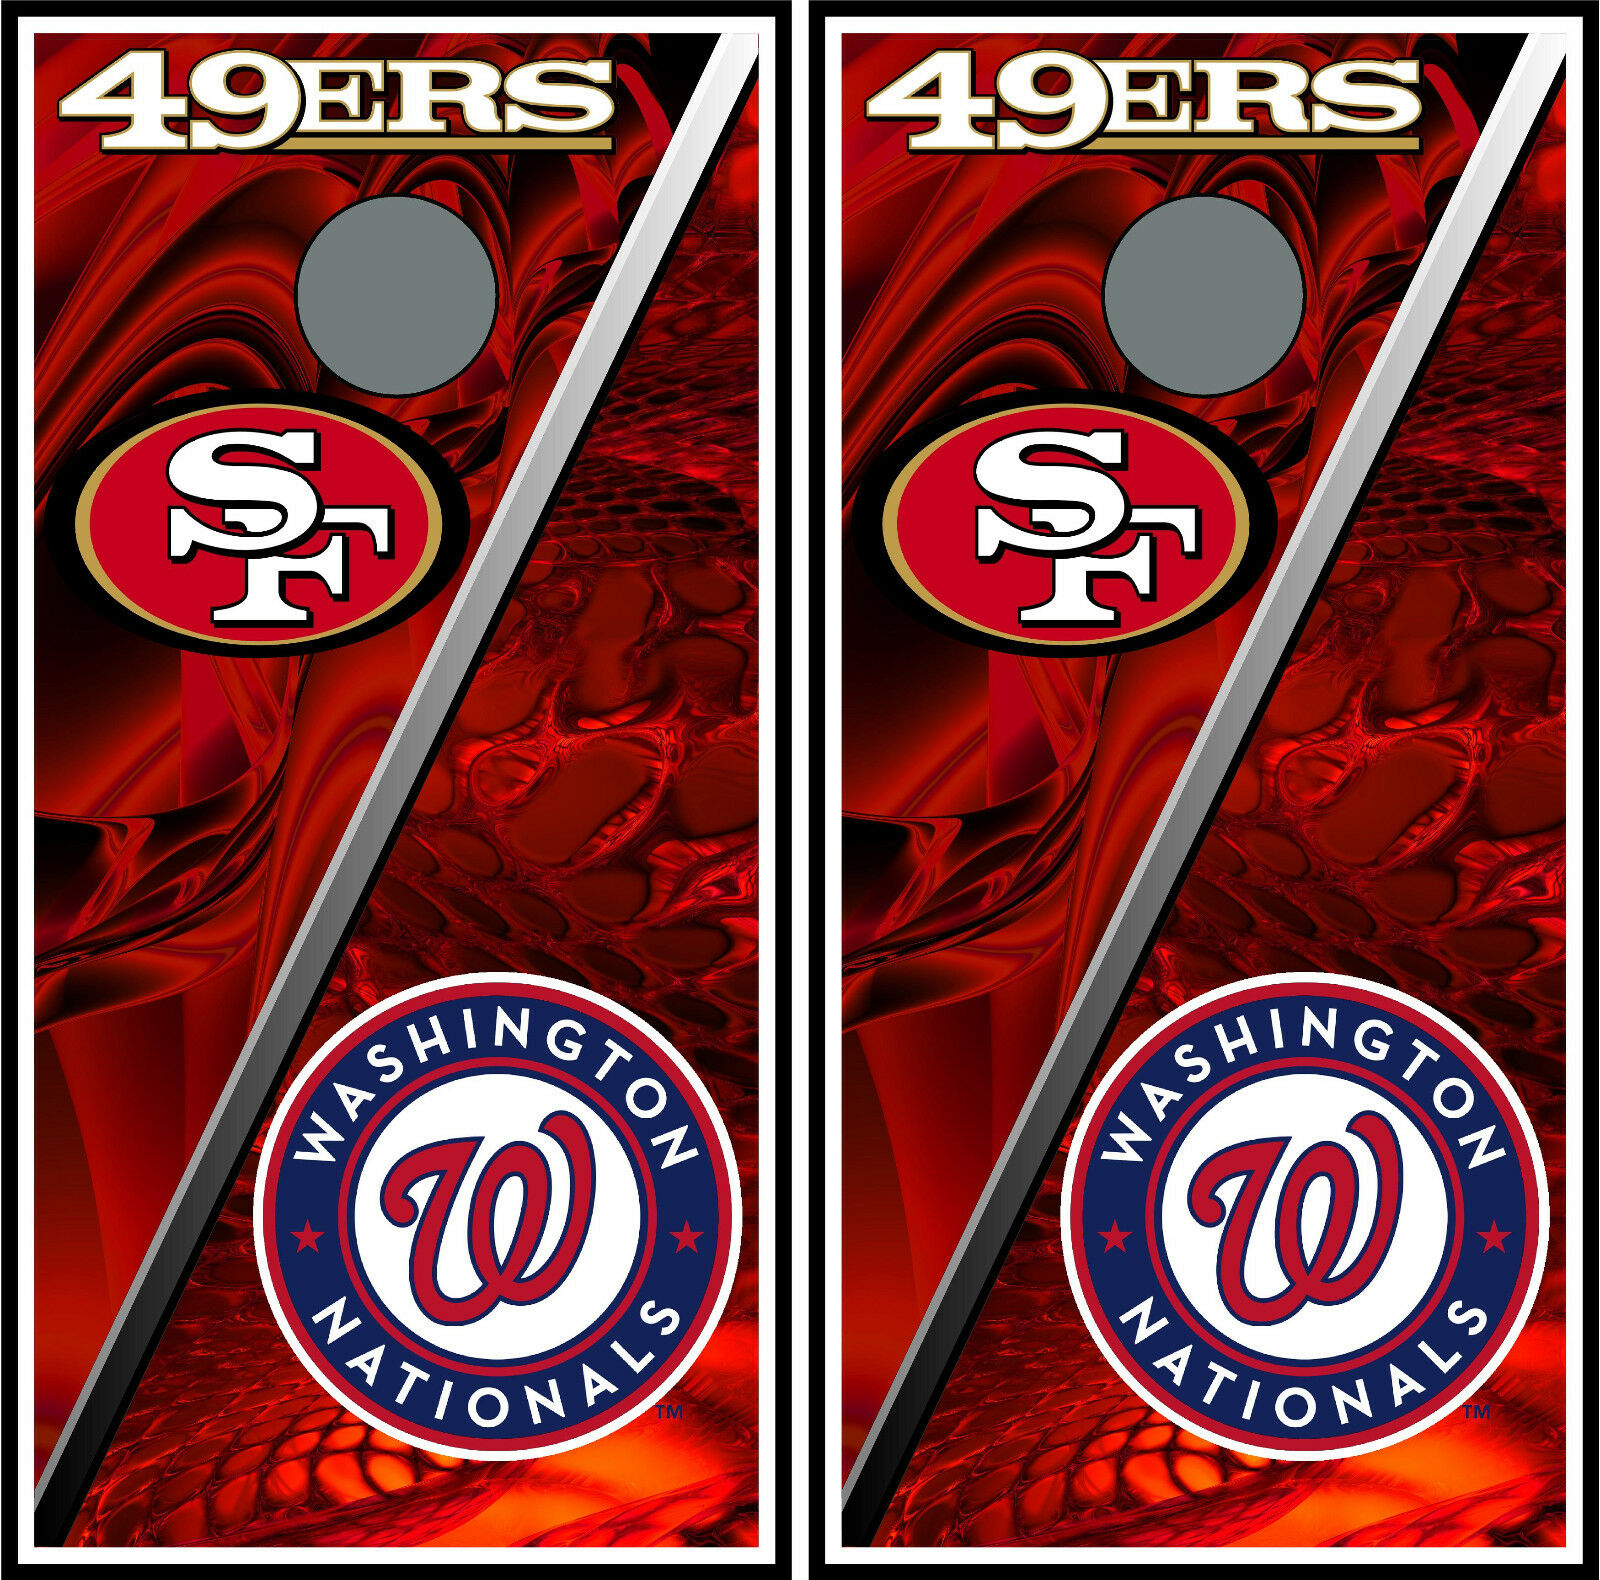 San Francisco 49ers & wash.  capitals split 0207 cornhole board vinyl wraps skins  enjoy saving 30-50% off